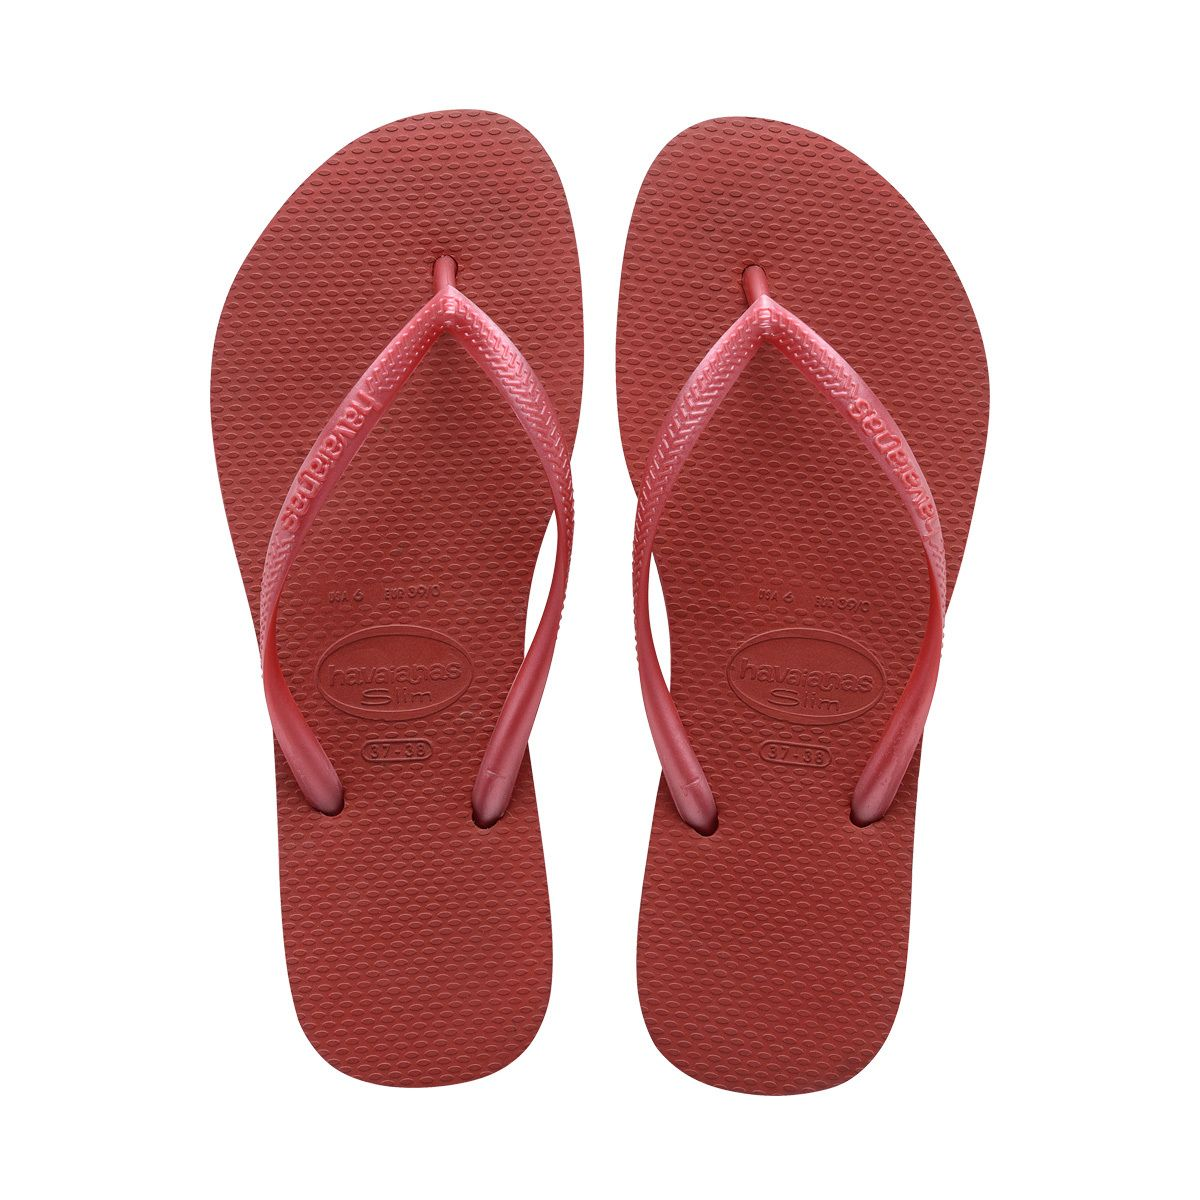 cc13308da 37 38 - Red - Women s Slim Thong Flip Flop Sandal